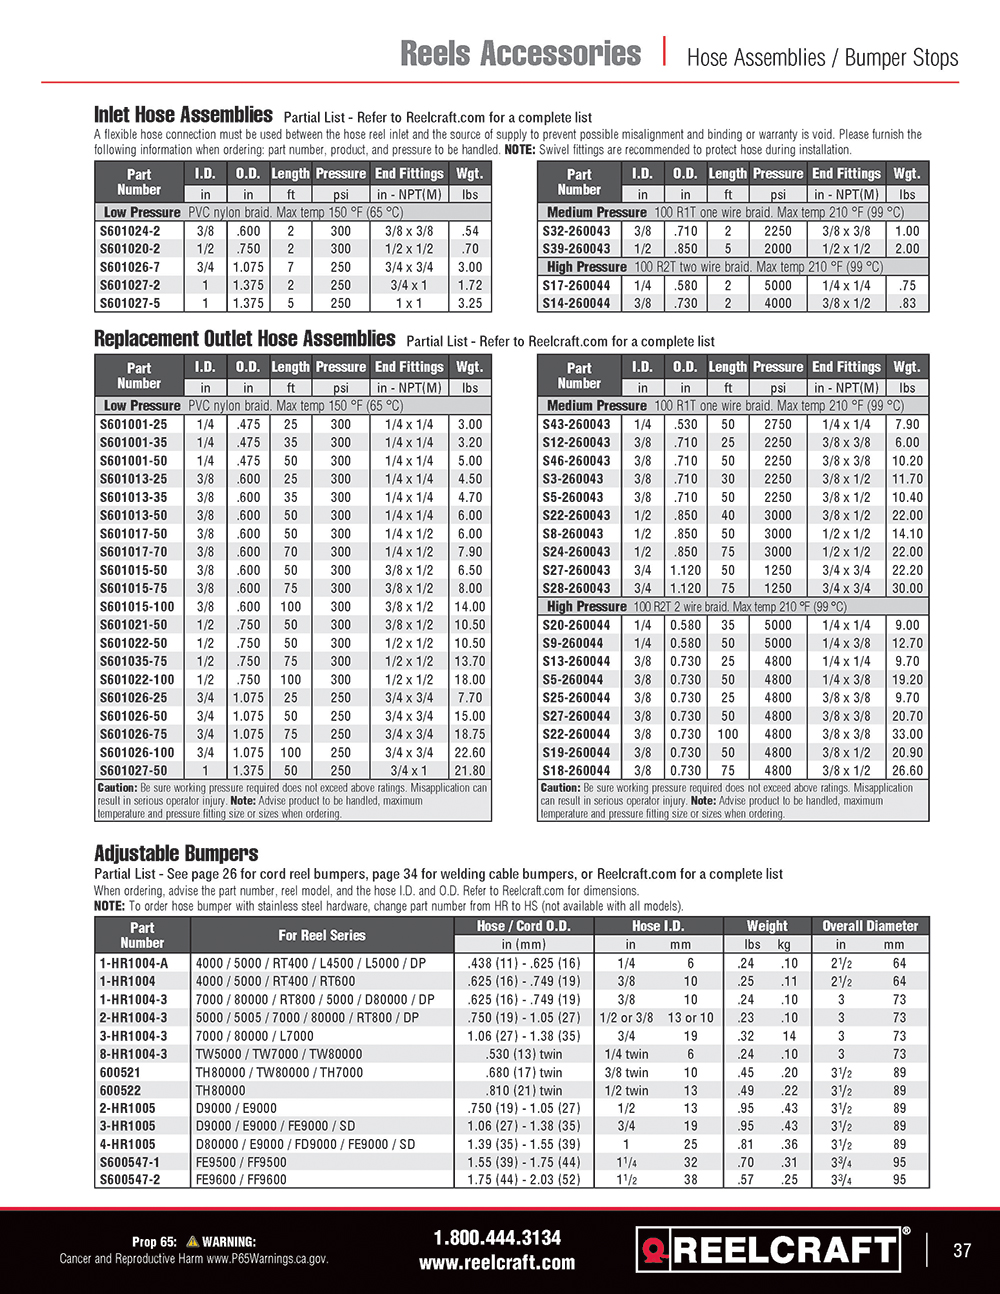 Reelcraft Catalog Page 37 - Power & Light Cord Reels